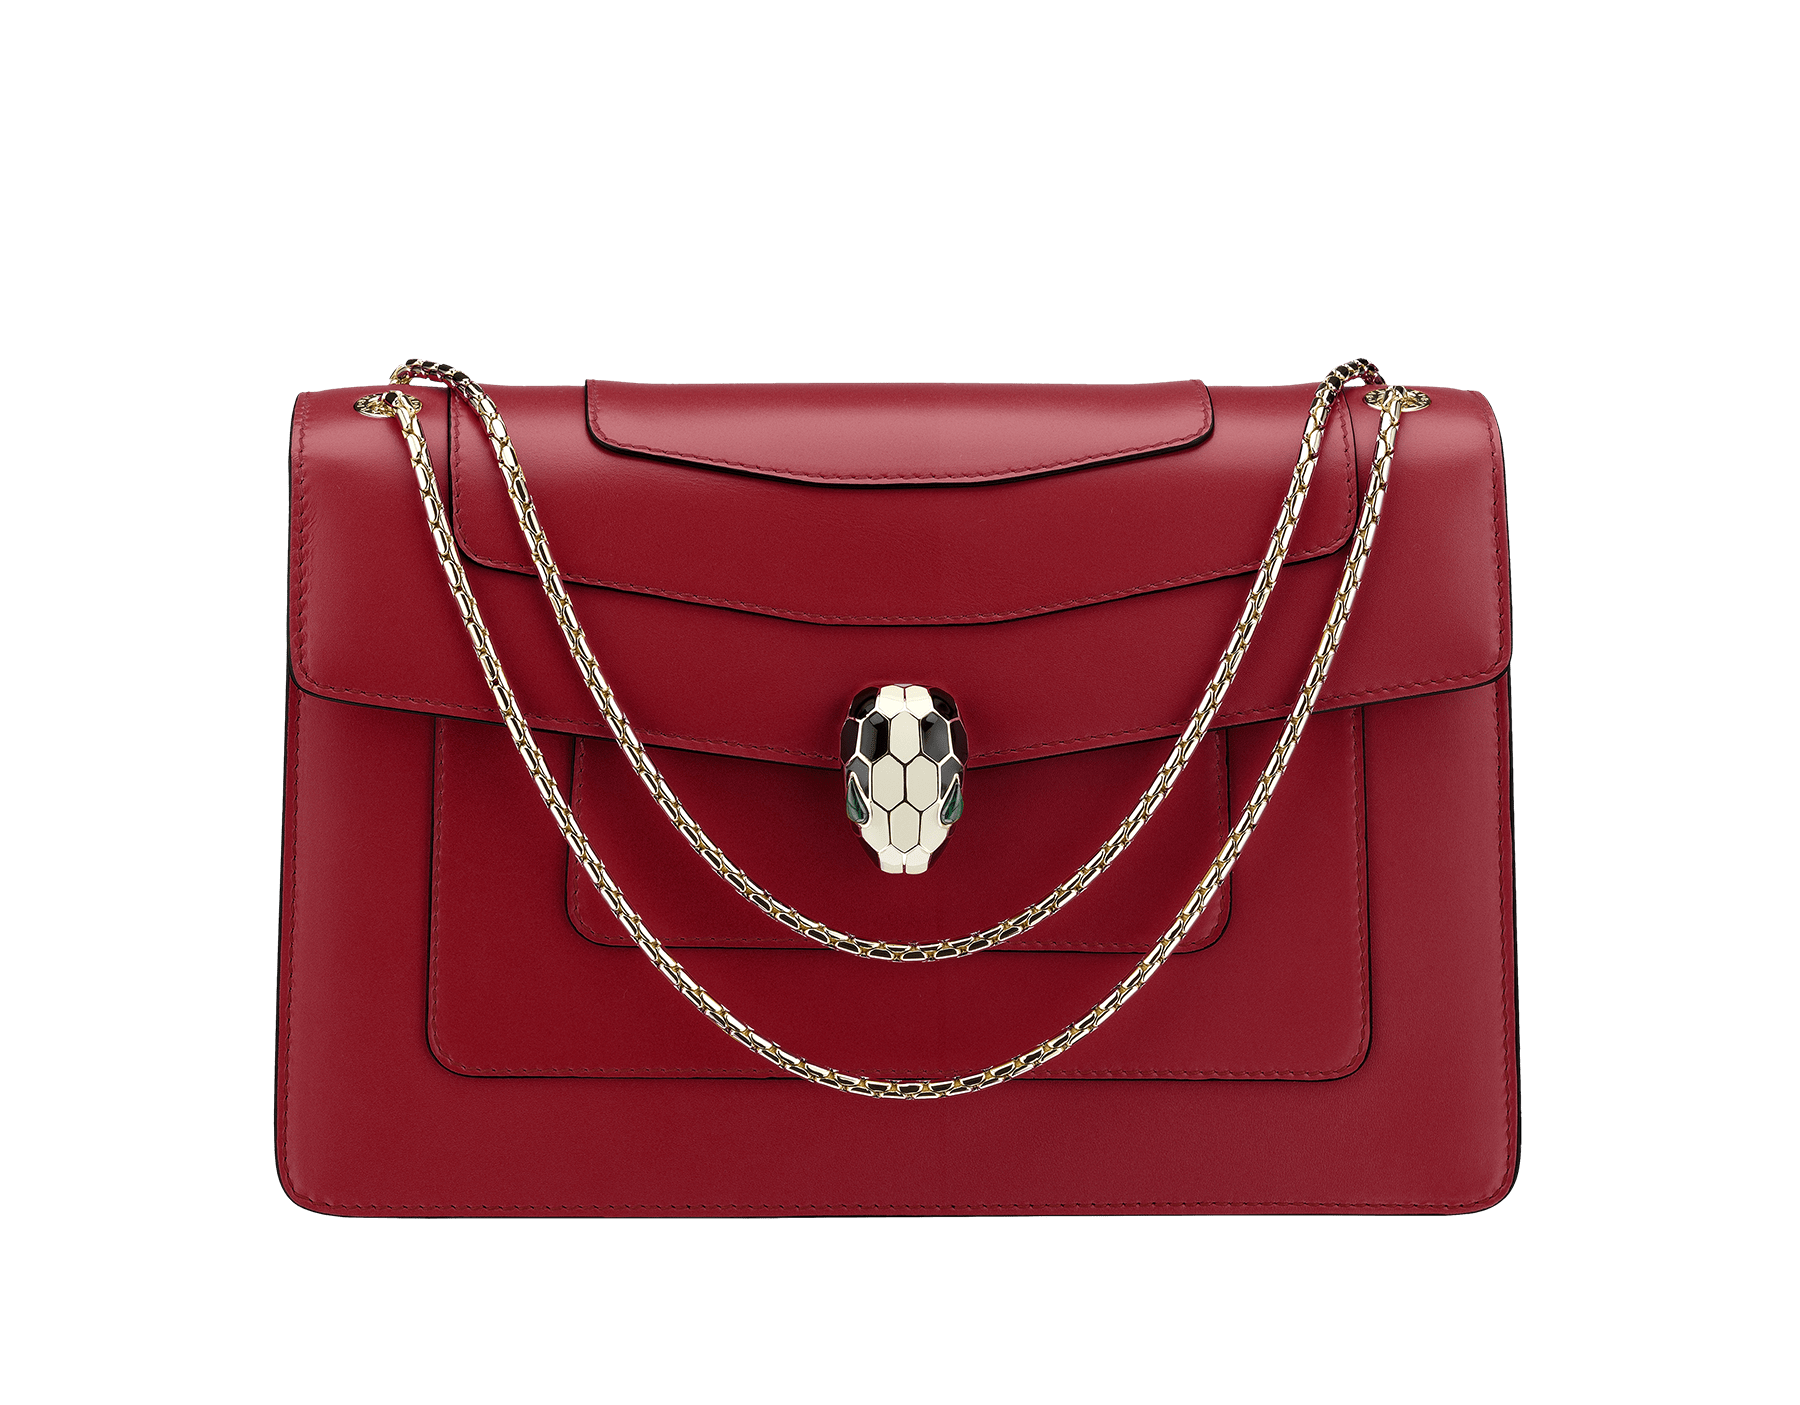 Flap cover bag Serpenti Forever in Roman garnet calf leather. Brass light gold plated snake head closure in black and white enamel with eyes in green malachite. 521-CLc image 1